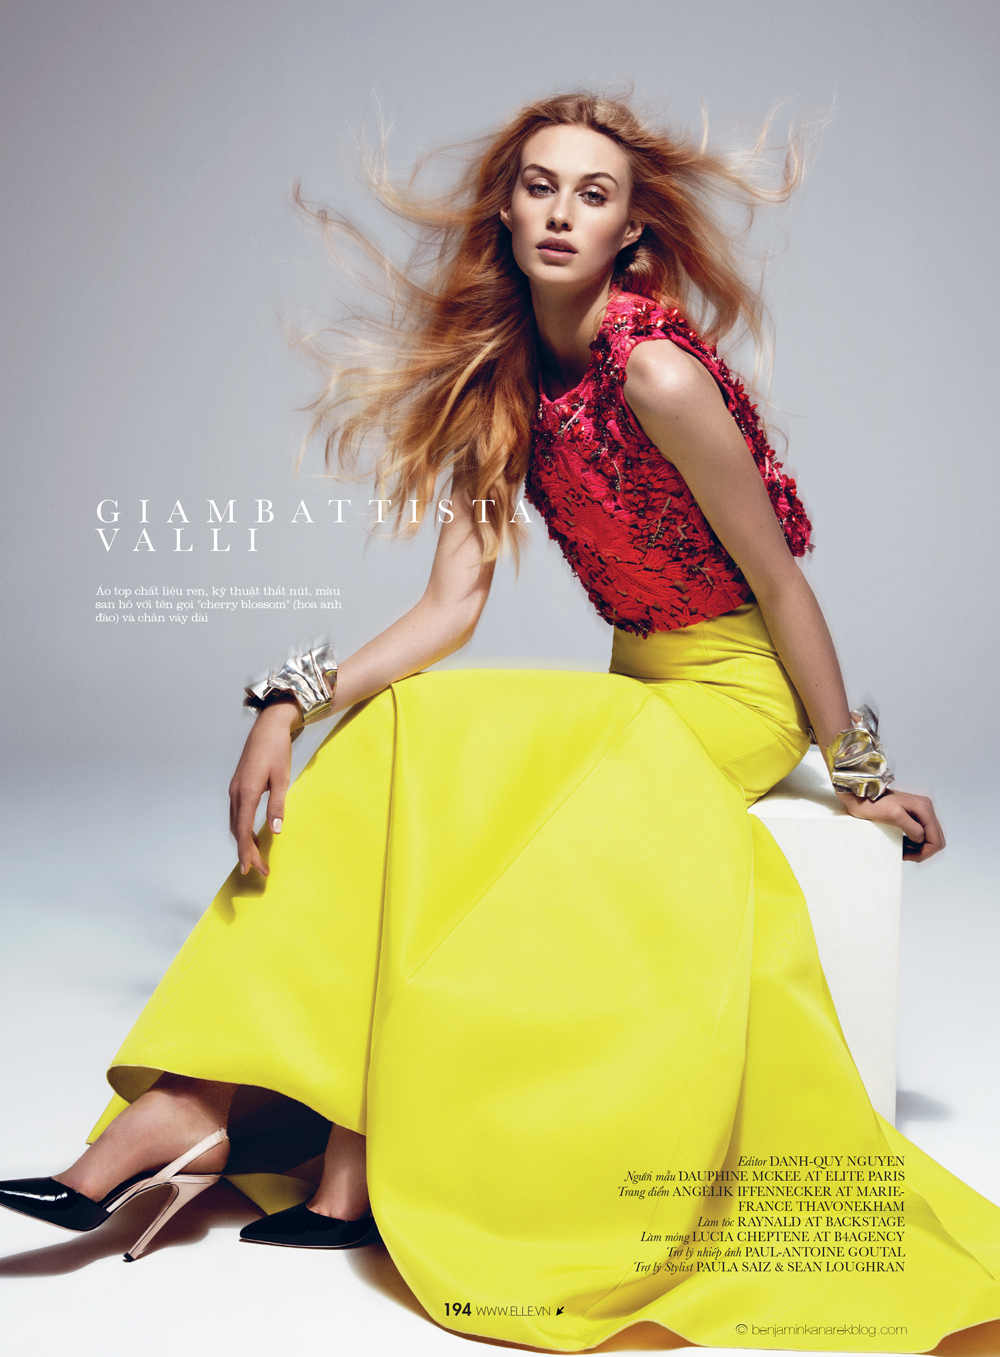 Dauphine McKee in Giambattista Valli © Benjamin Kanarek for ELLE Vietnam April 2014